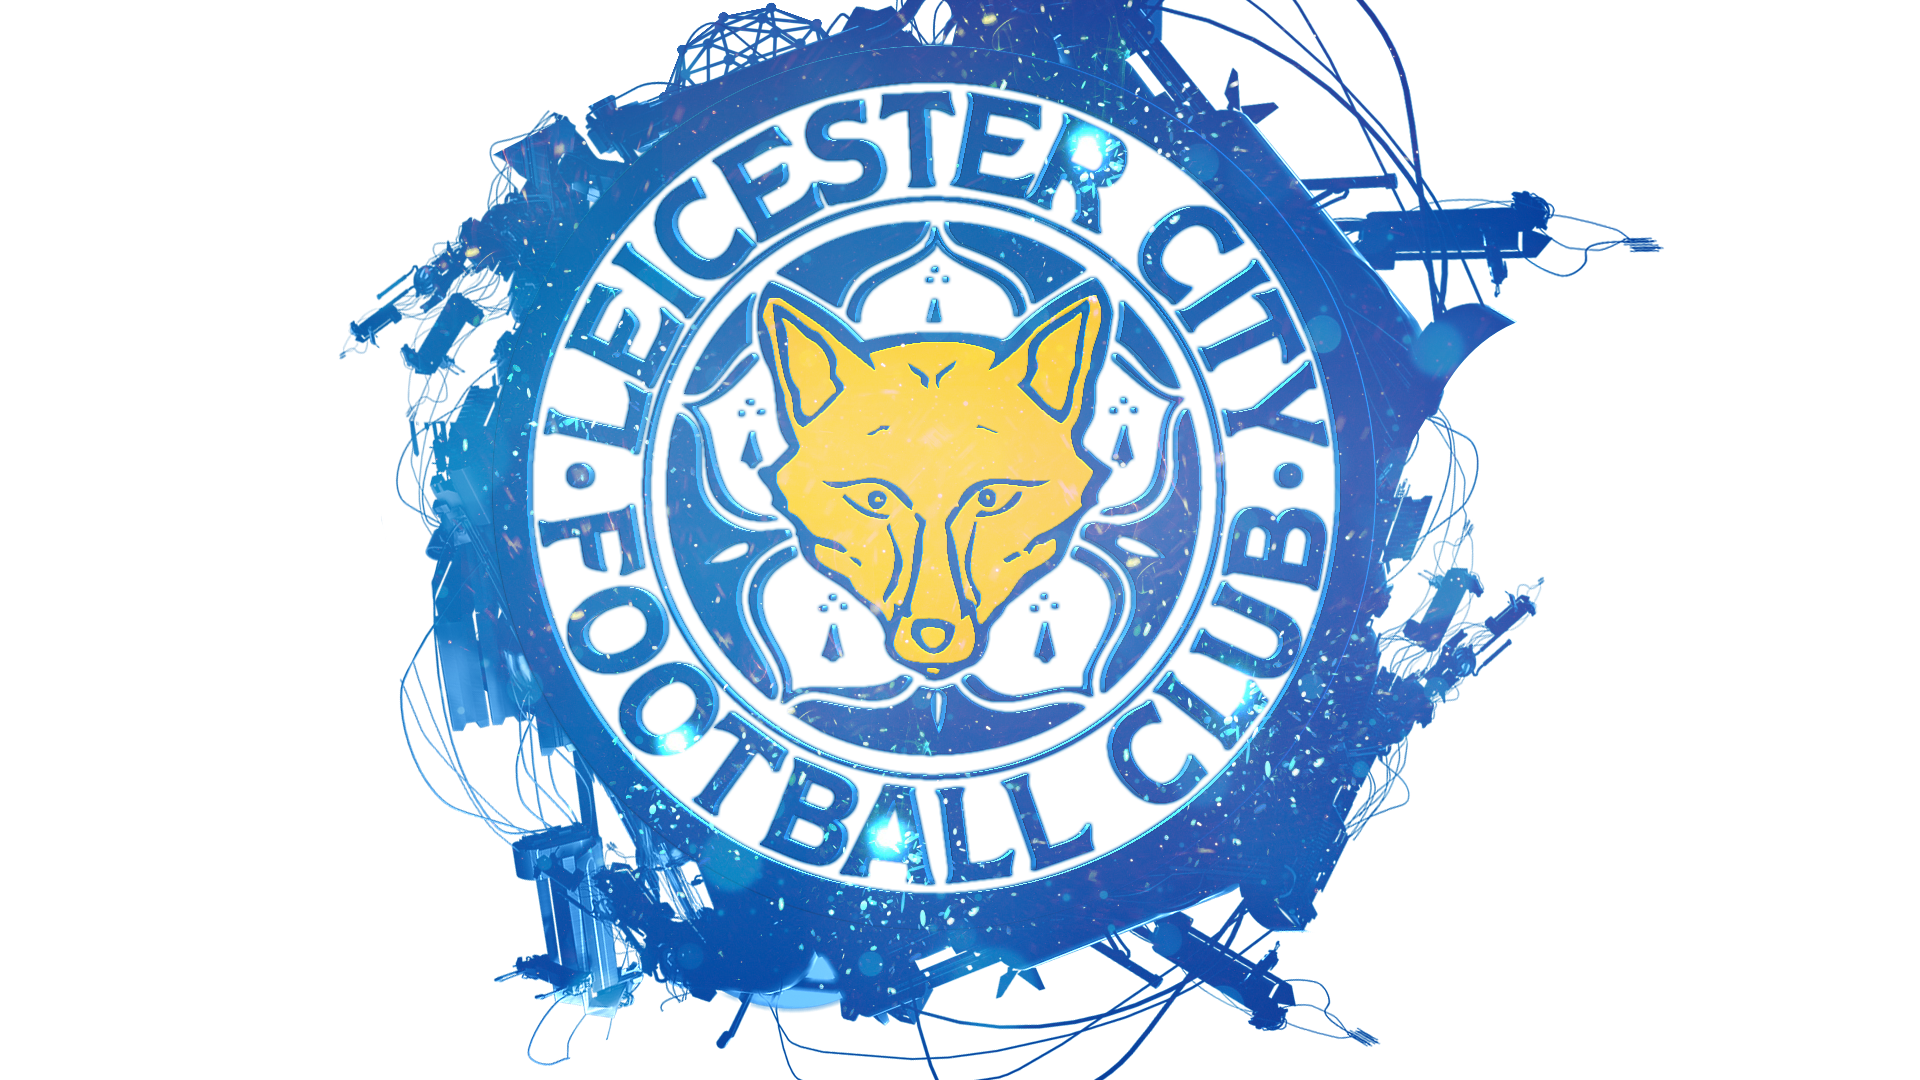 Header Image Courtesy Of Leicester City Fc - Leicester City Fc, Transparent background PNG HD thumbnail